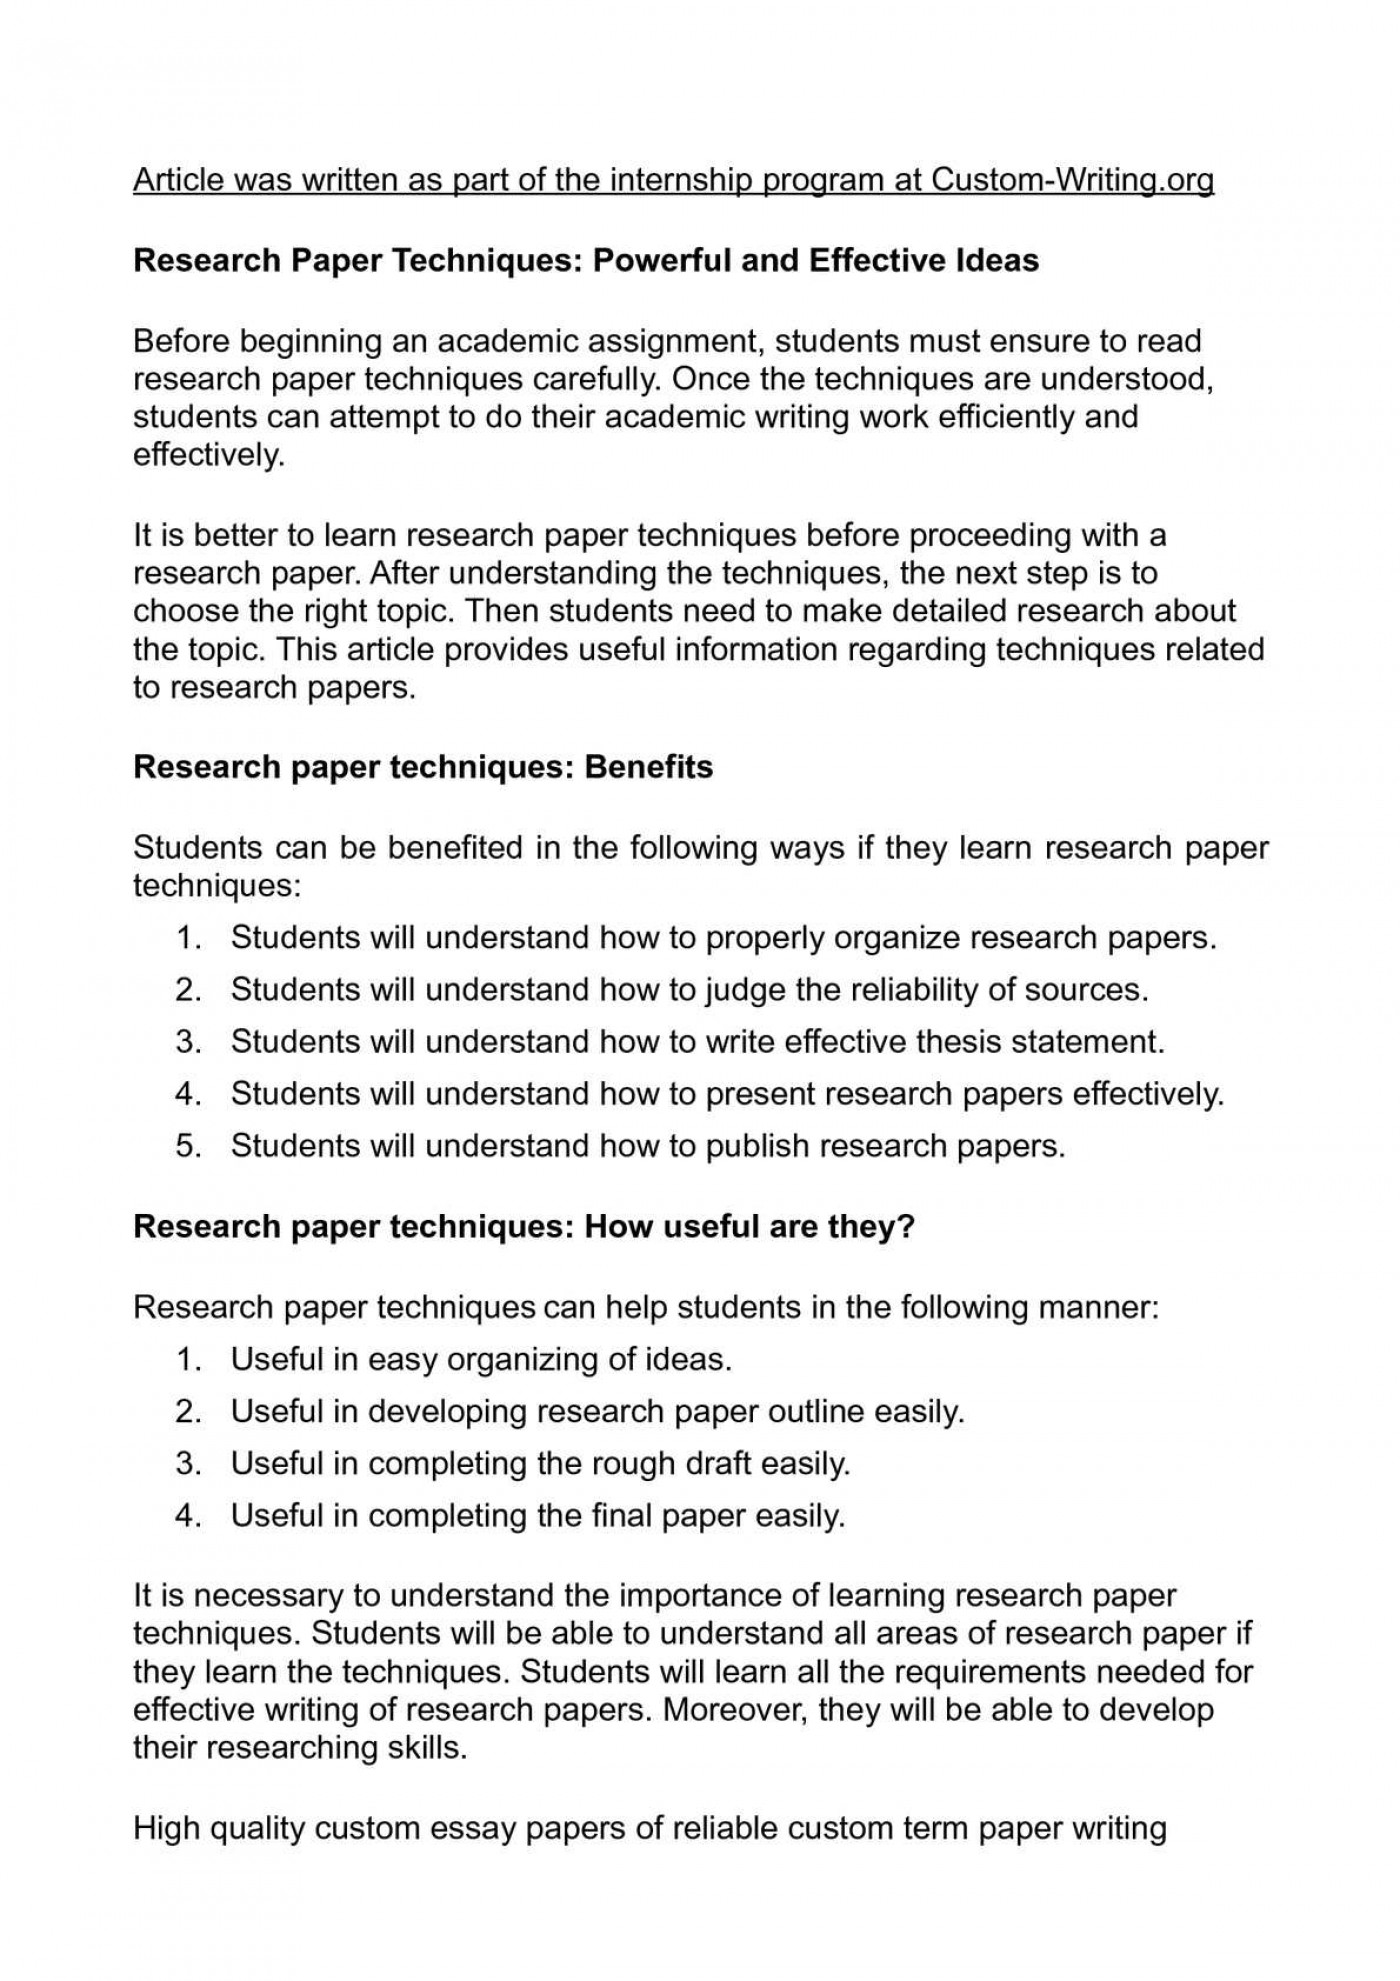 003 Ideas For Researchs P1 Archaicawful Research Papers High School Paper On Technology Healthcare 1400